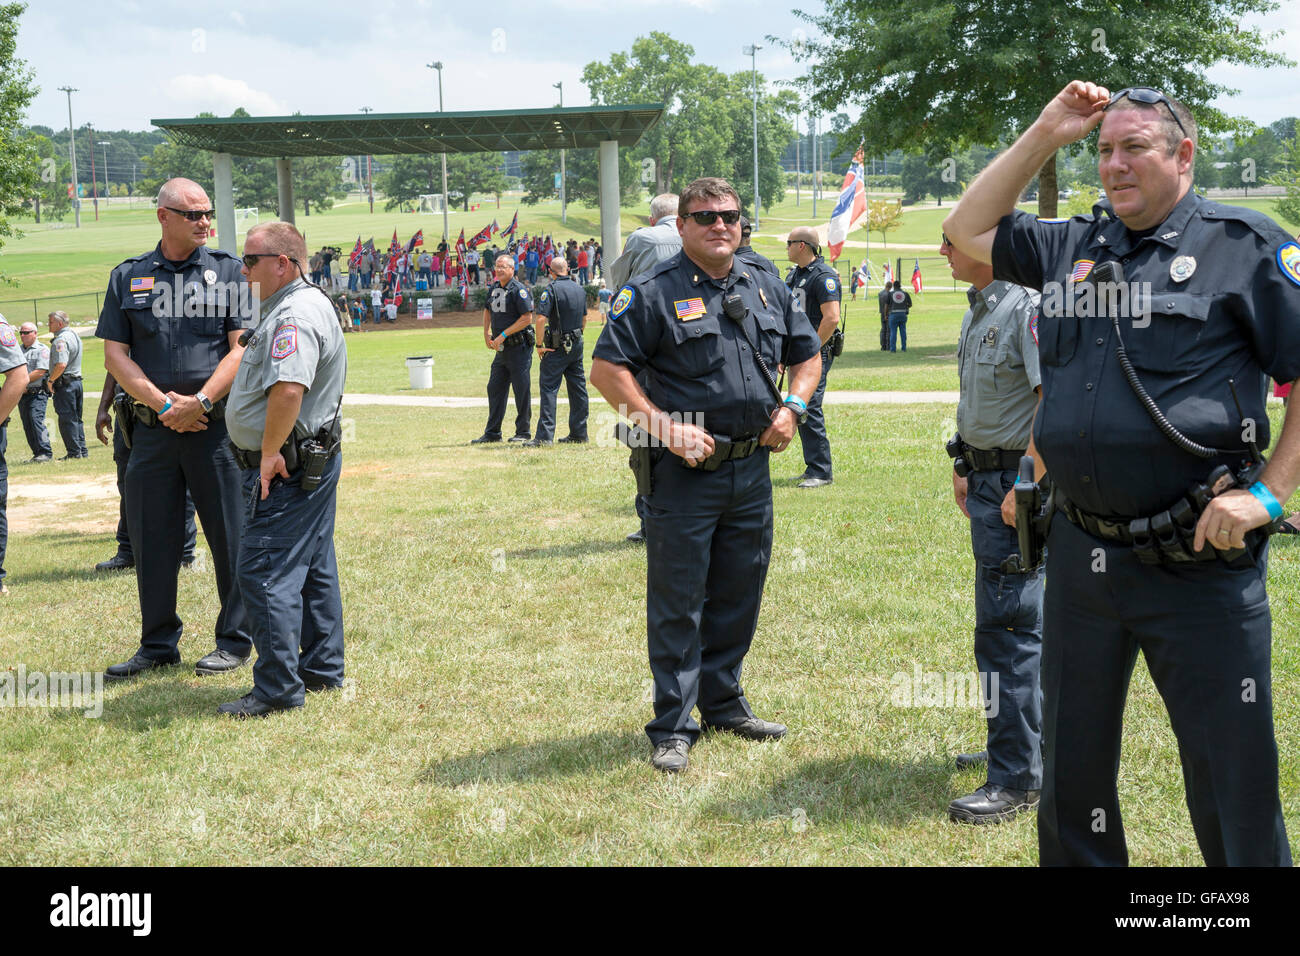 There was plenty of law enforcement on hand during a Black Lives Matter and Blue Lives Matter rally in Tupelo, Ms. - Stock Image